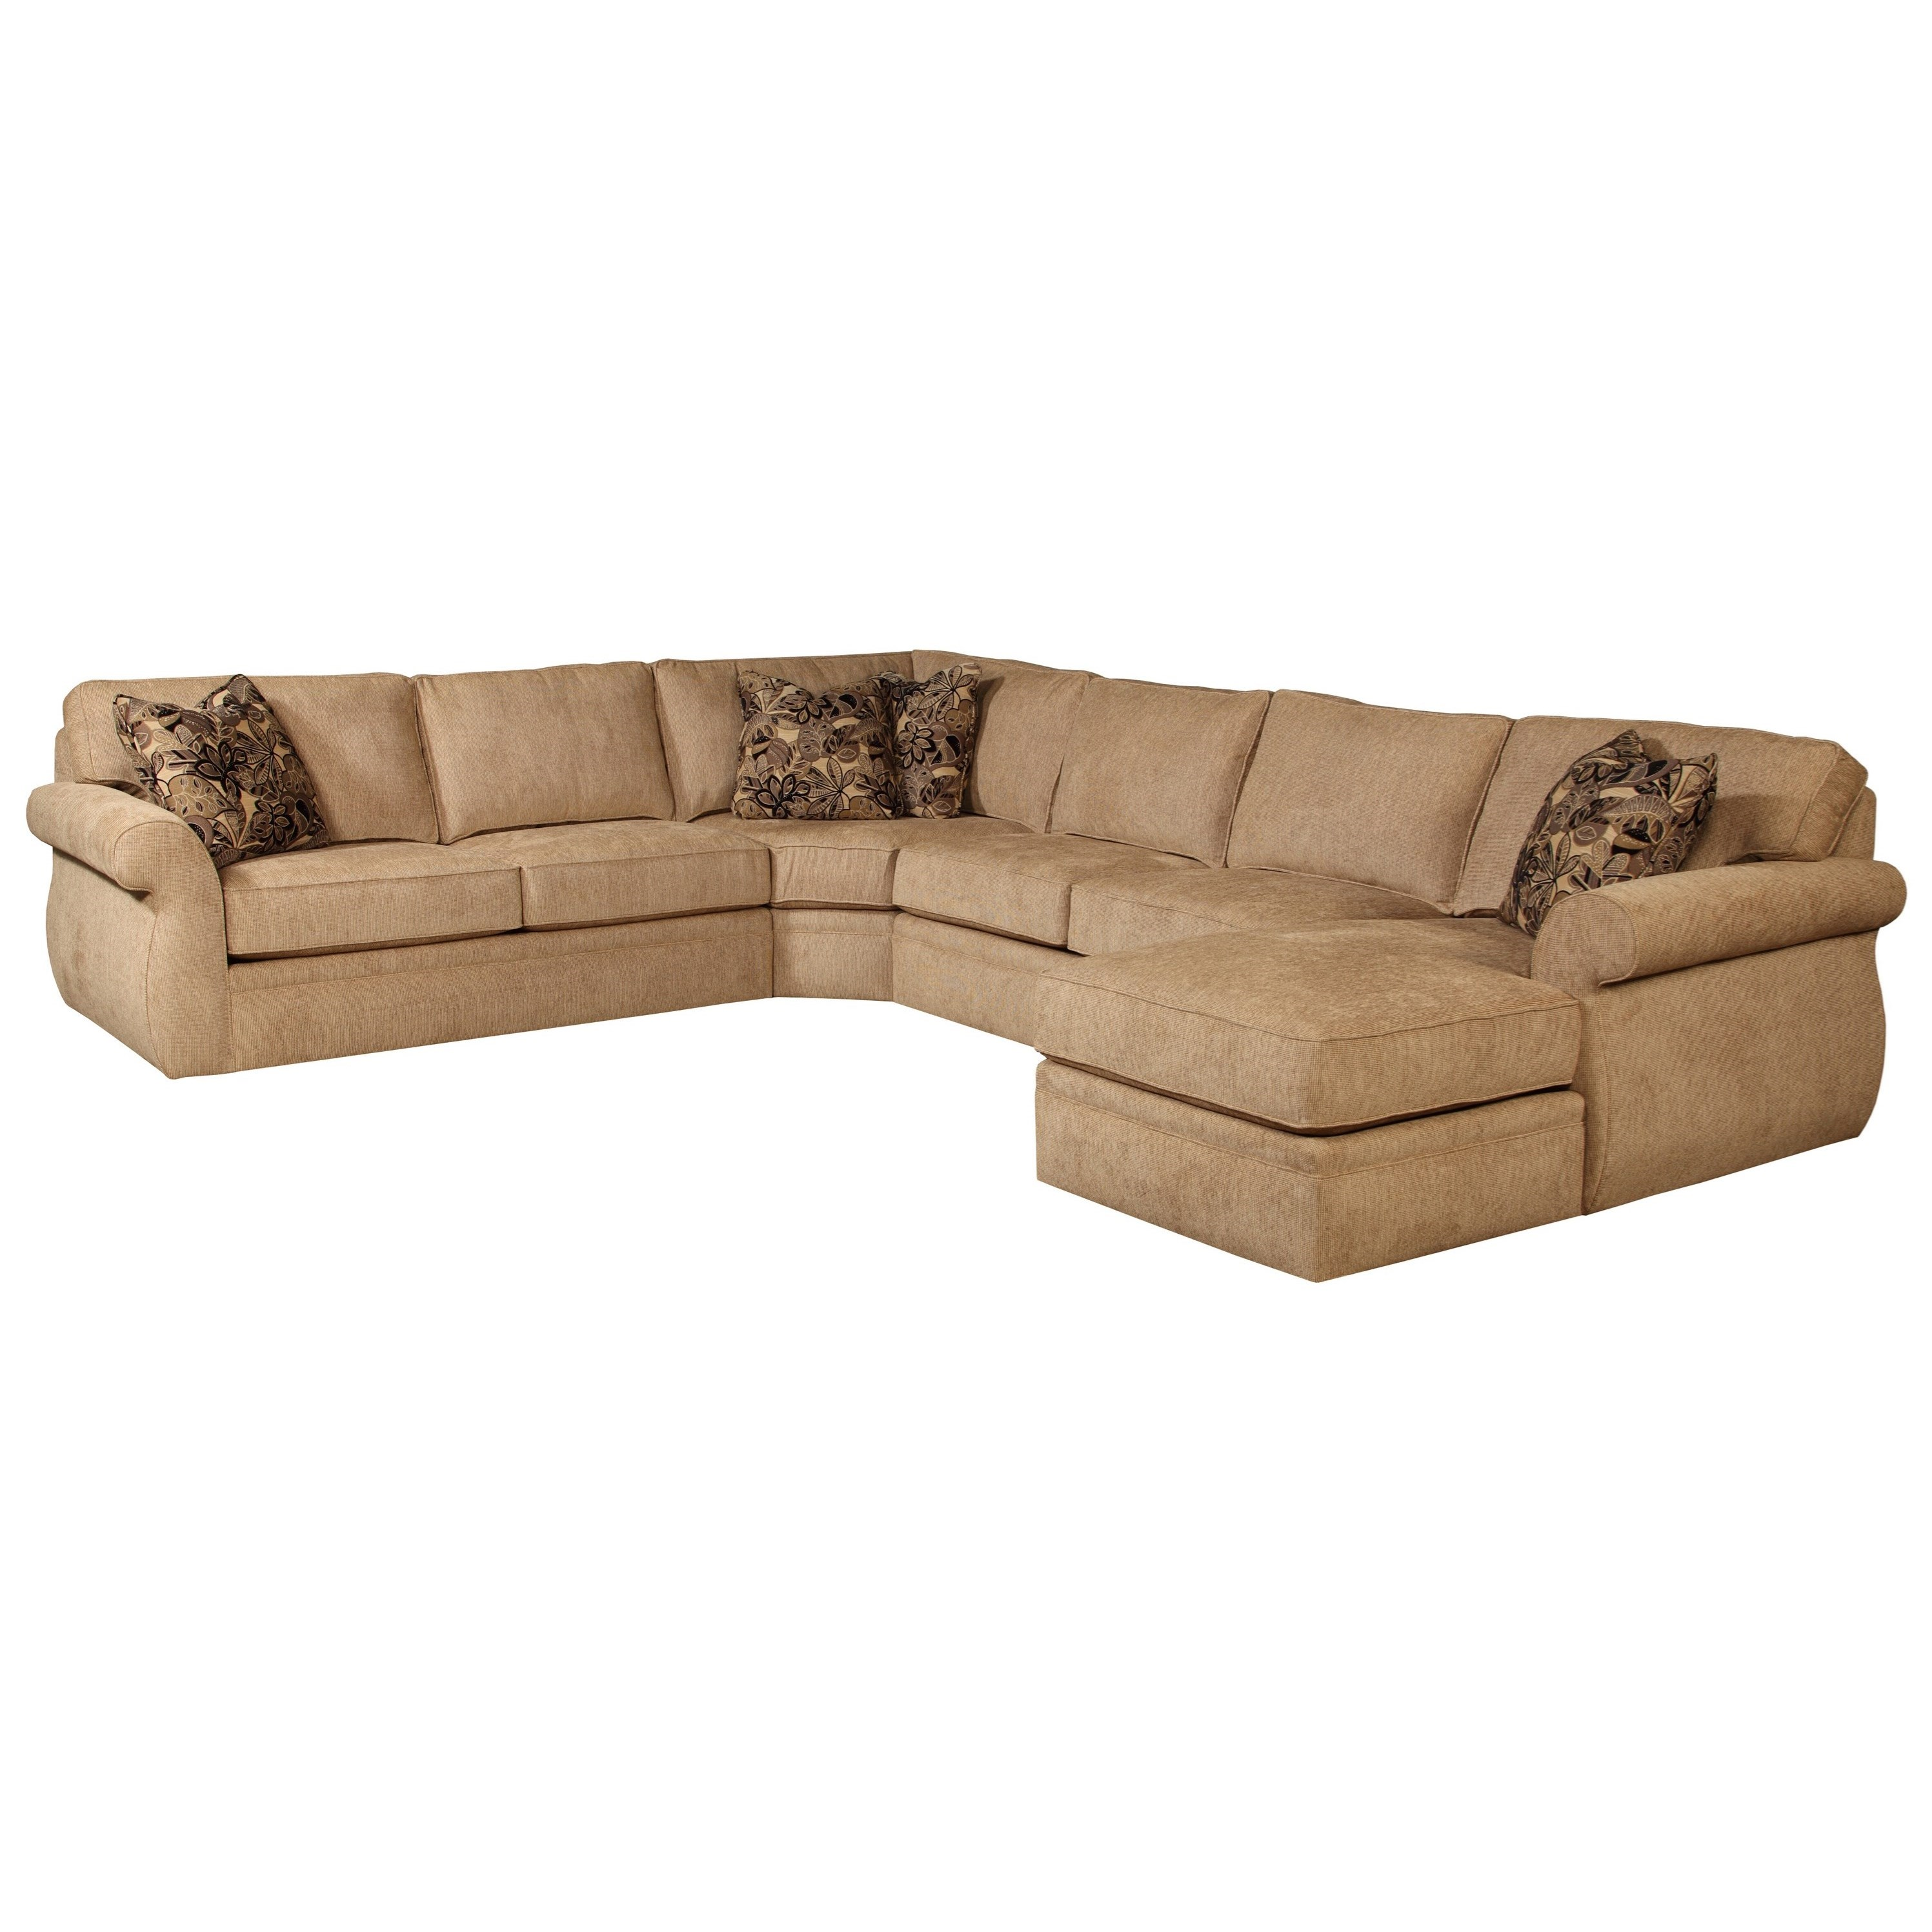 Broyhill Furniture Veronica Sectional Sofa - Item Number: 6170-3+8+6171-1+4-8595-83